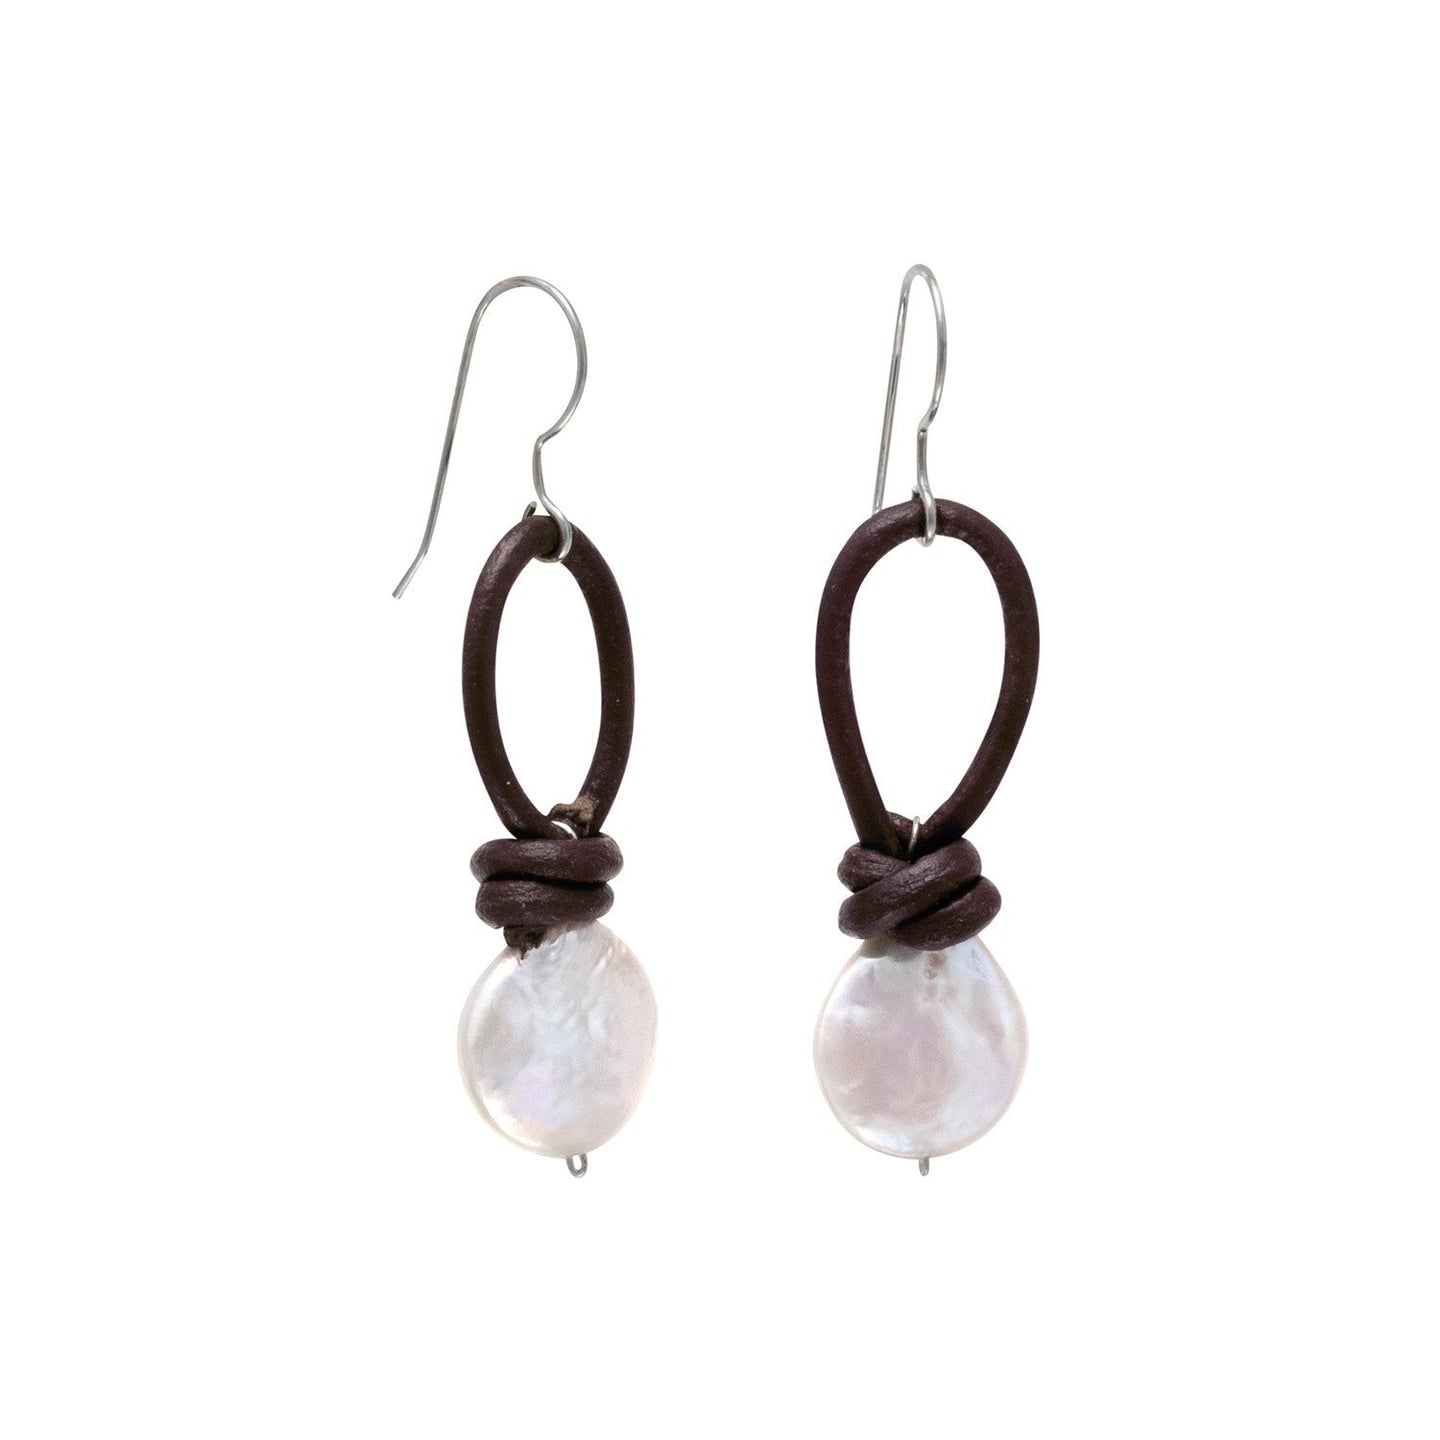 Leather and Cultured Freshwater Pearl Earrings - the-southern-magnolia-too